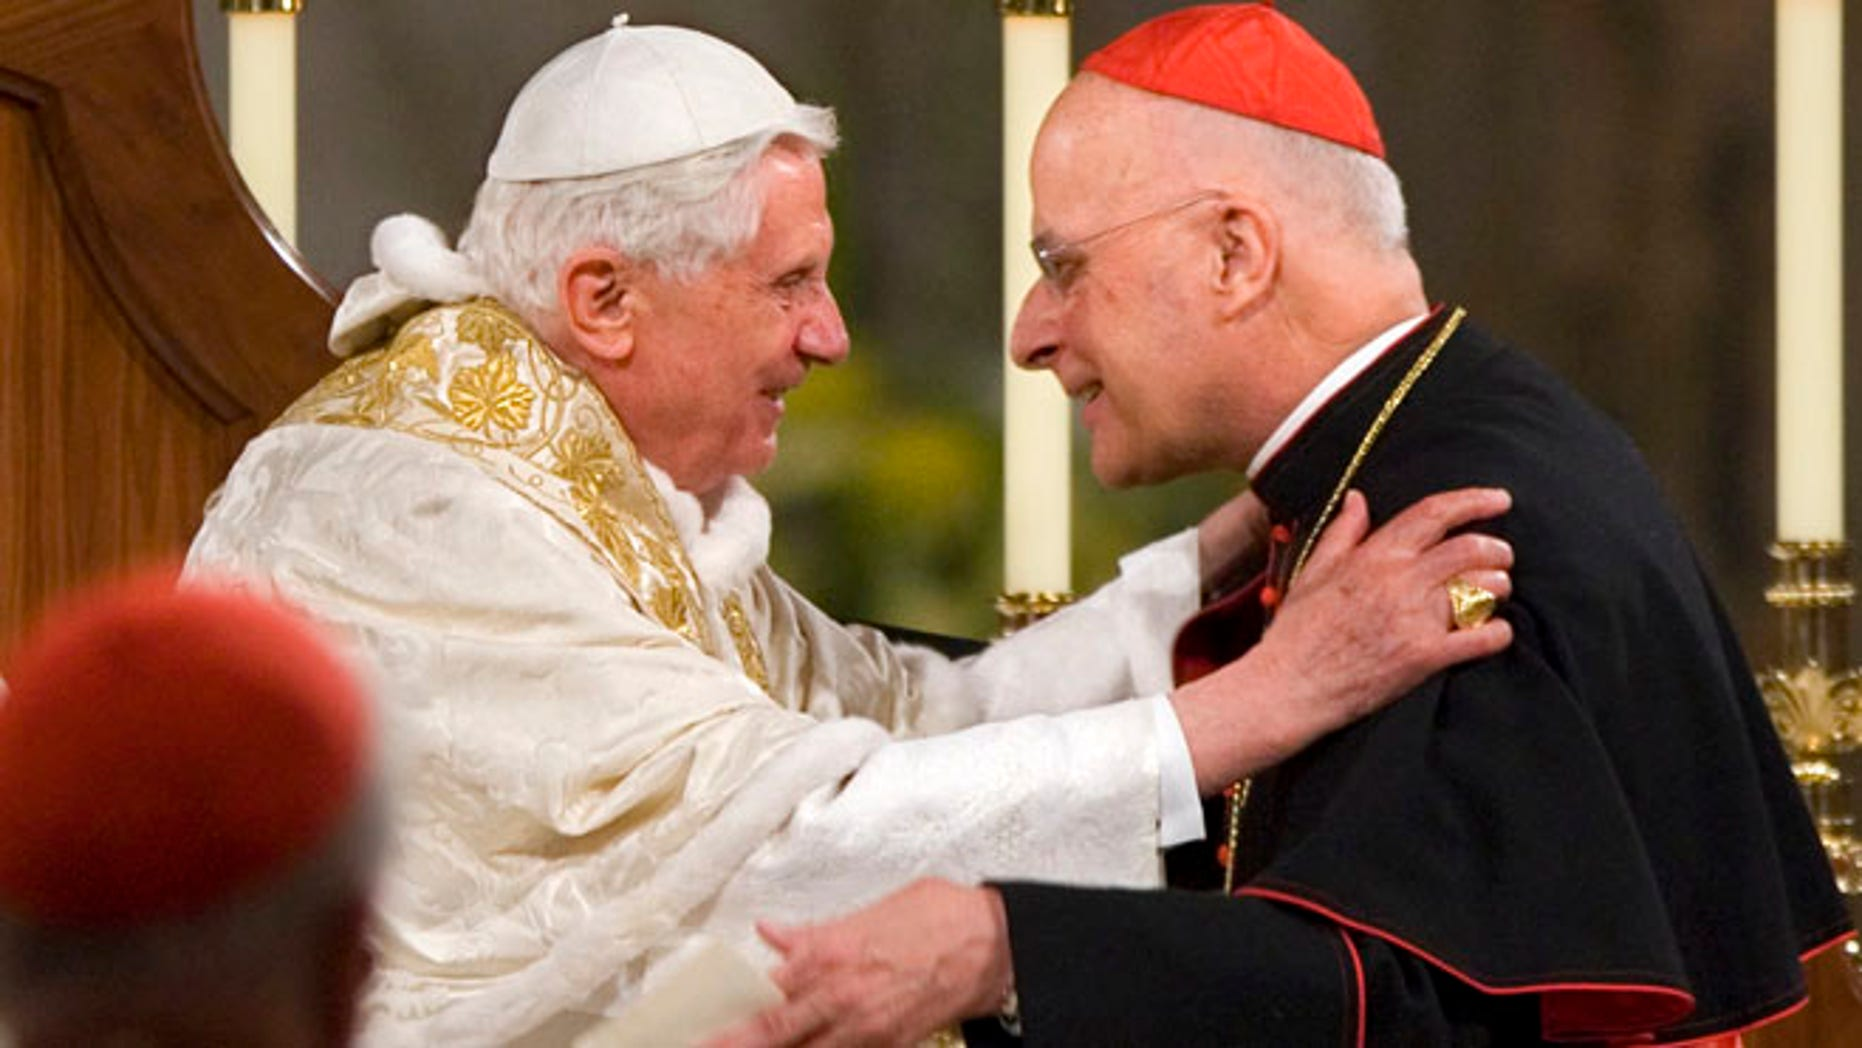 April 16, 2008: Pope Benedict XVI embraces Chicago's Cardinal Francis George after addressing the bishops at the Basilica of the National Shrine of the Immaculate Conception in Washington. (AP)